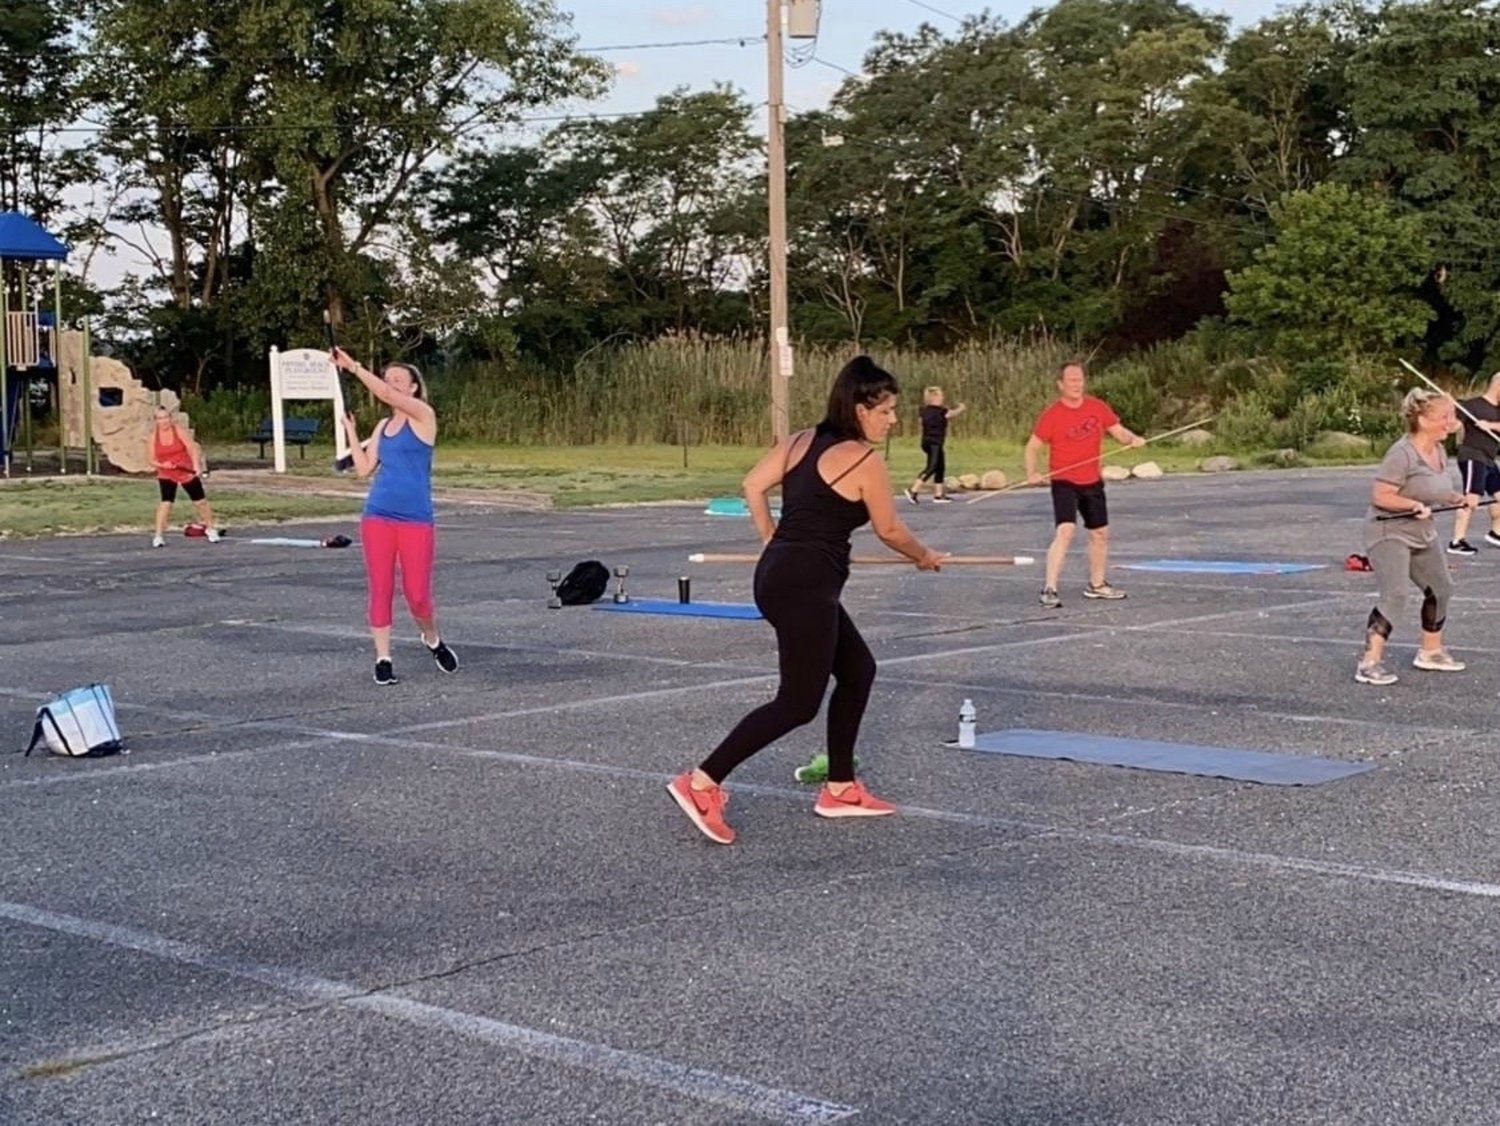 Staff and clients of the Max Challenge of Glen Cove were happy to work out with one another again with the introduction of outdoor classes at Morgan Park and Pryibil Beach.